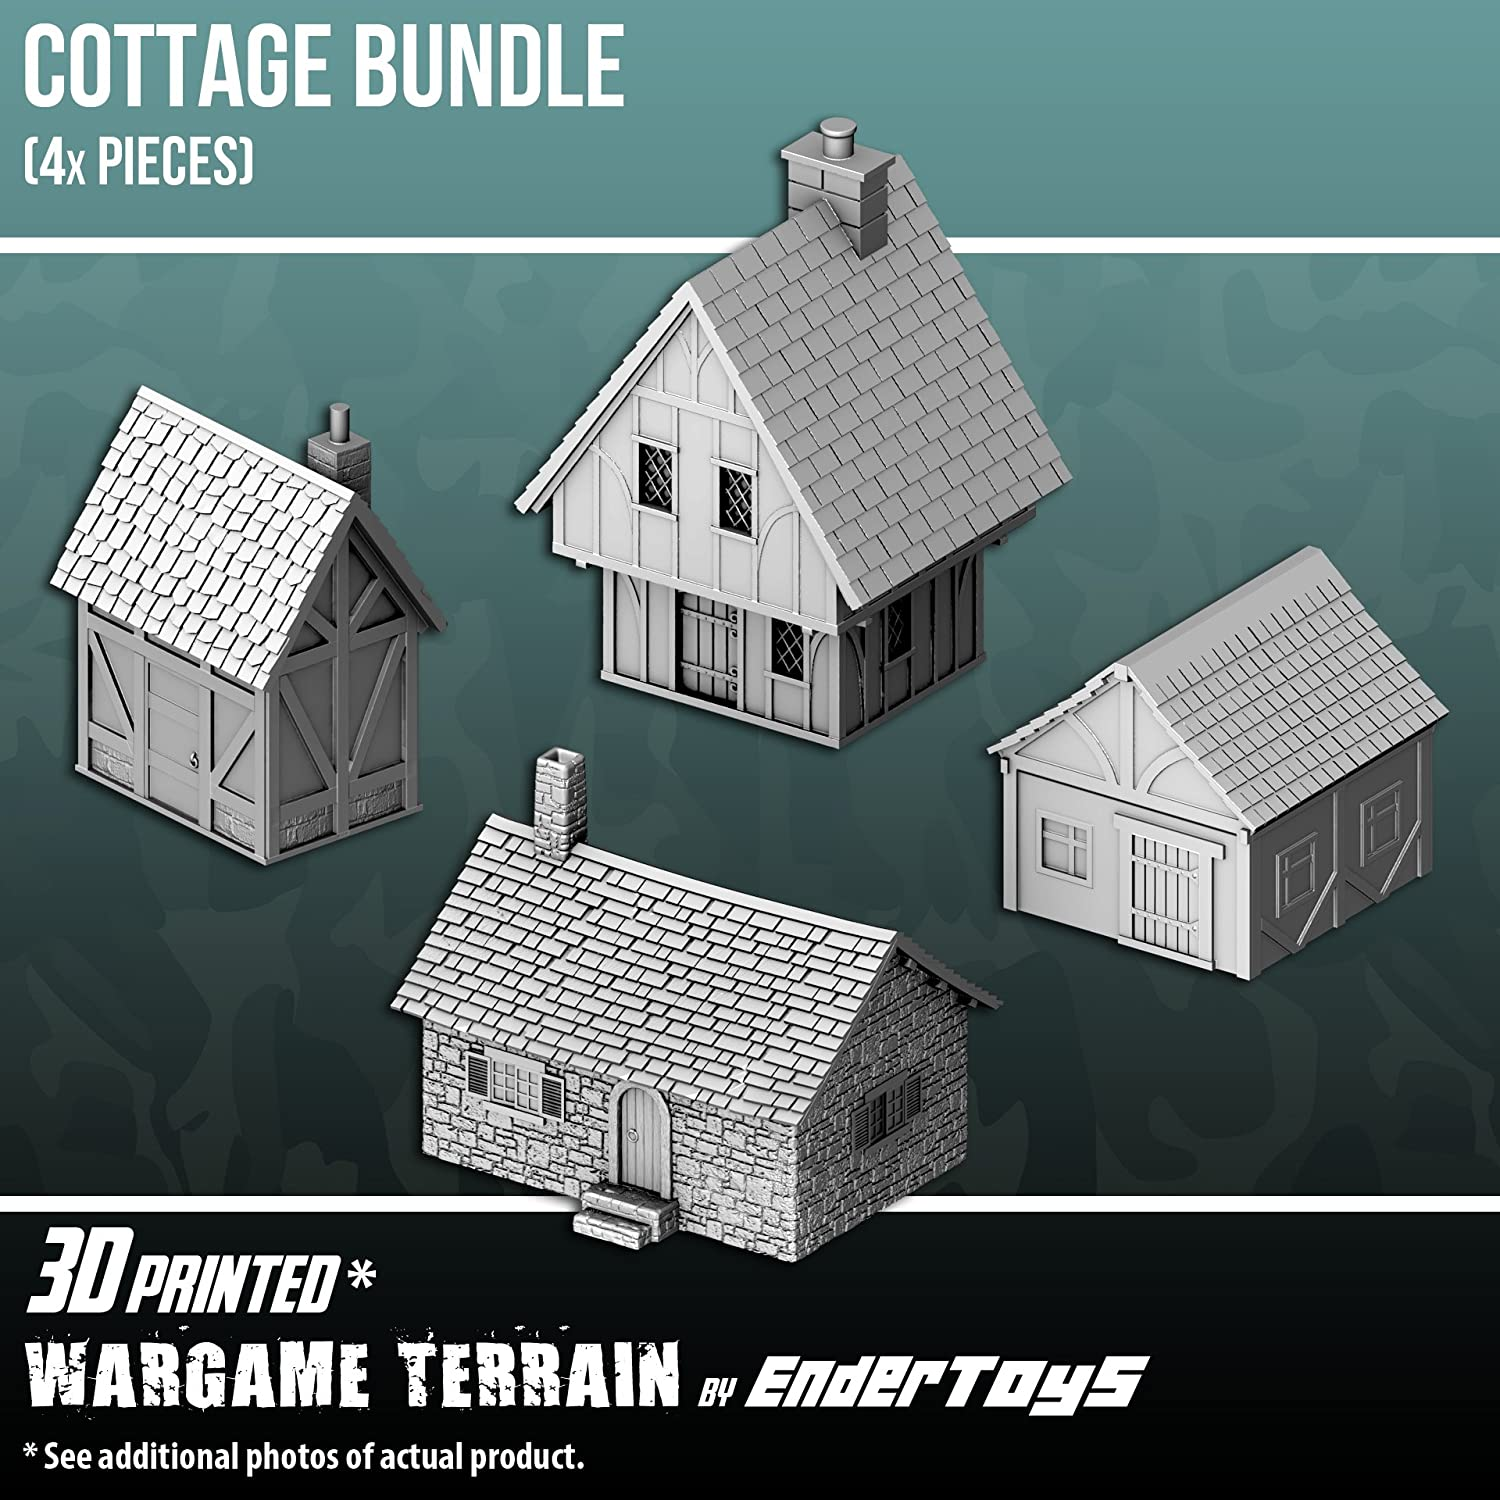 picture about Free 3d Printable Terrain named EnderToys Cottage Package, Terrain Surroundings for Tabletop 28mm Miniatures Wargame, 3D Posted and Paintable